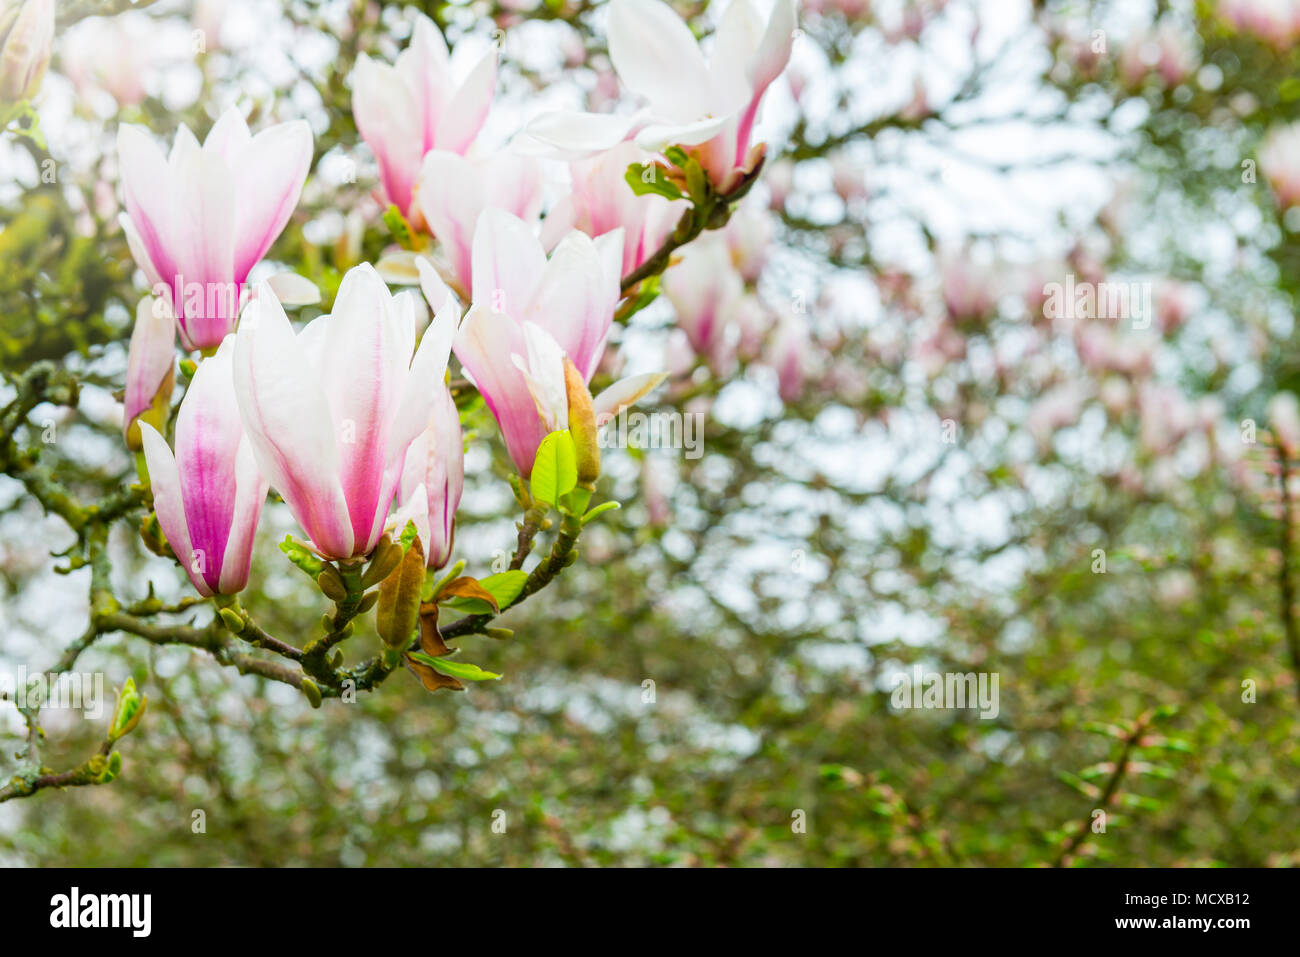 Magnolia Tree Bench Stock Photos & Magnolia Tree Bench Stock Images ...